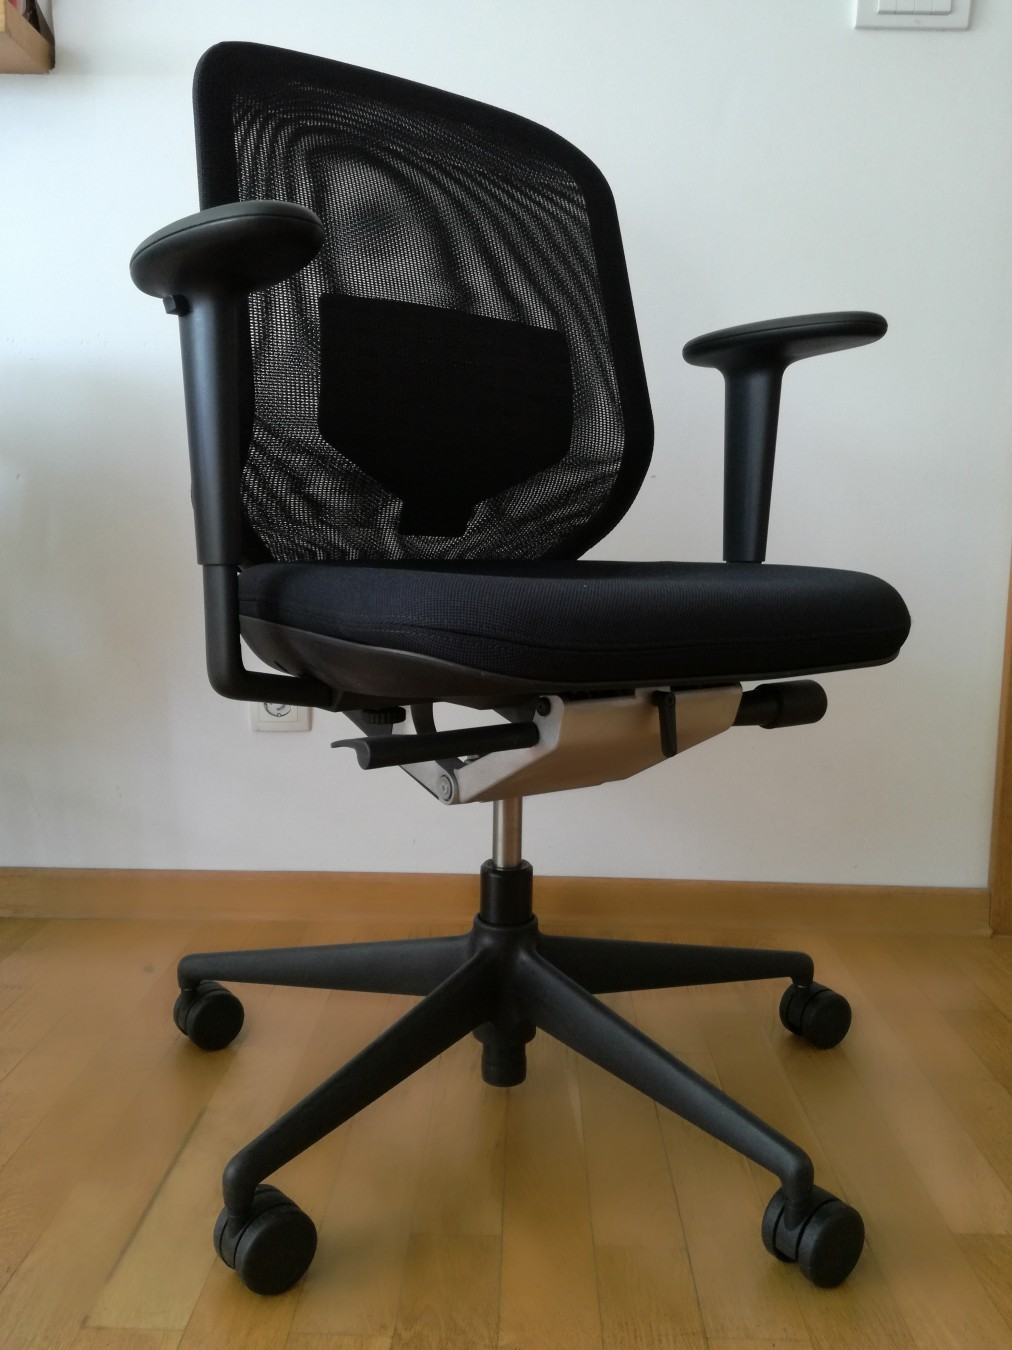 Vitra Medapal Vitra Medapal Awesome Gallery Of Amazing Swivel Task Chair With